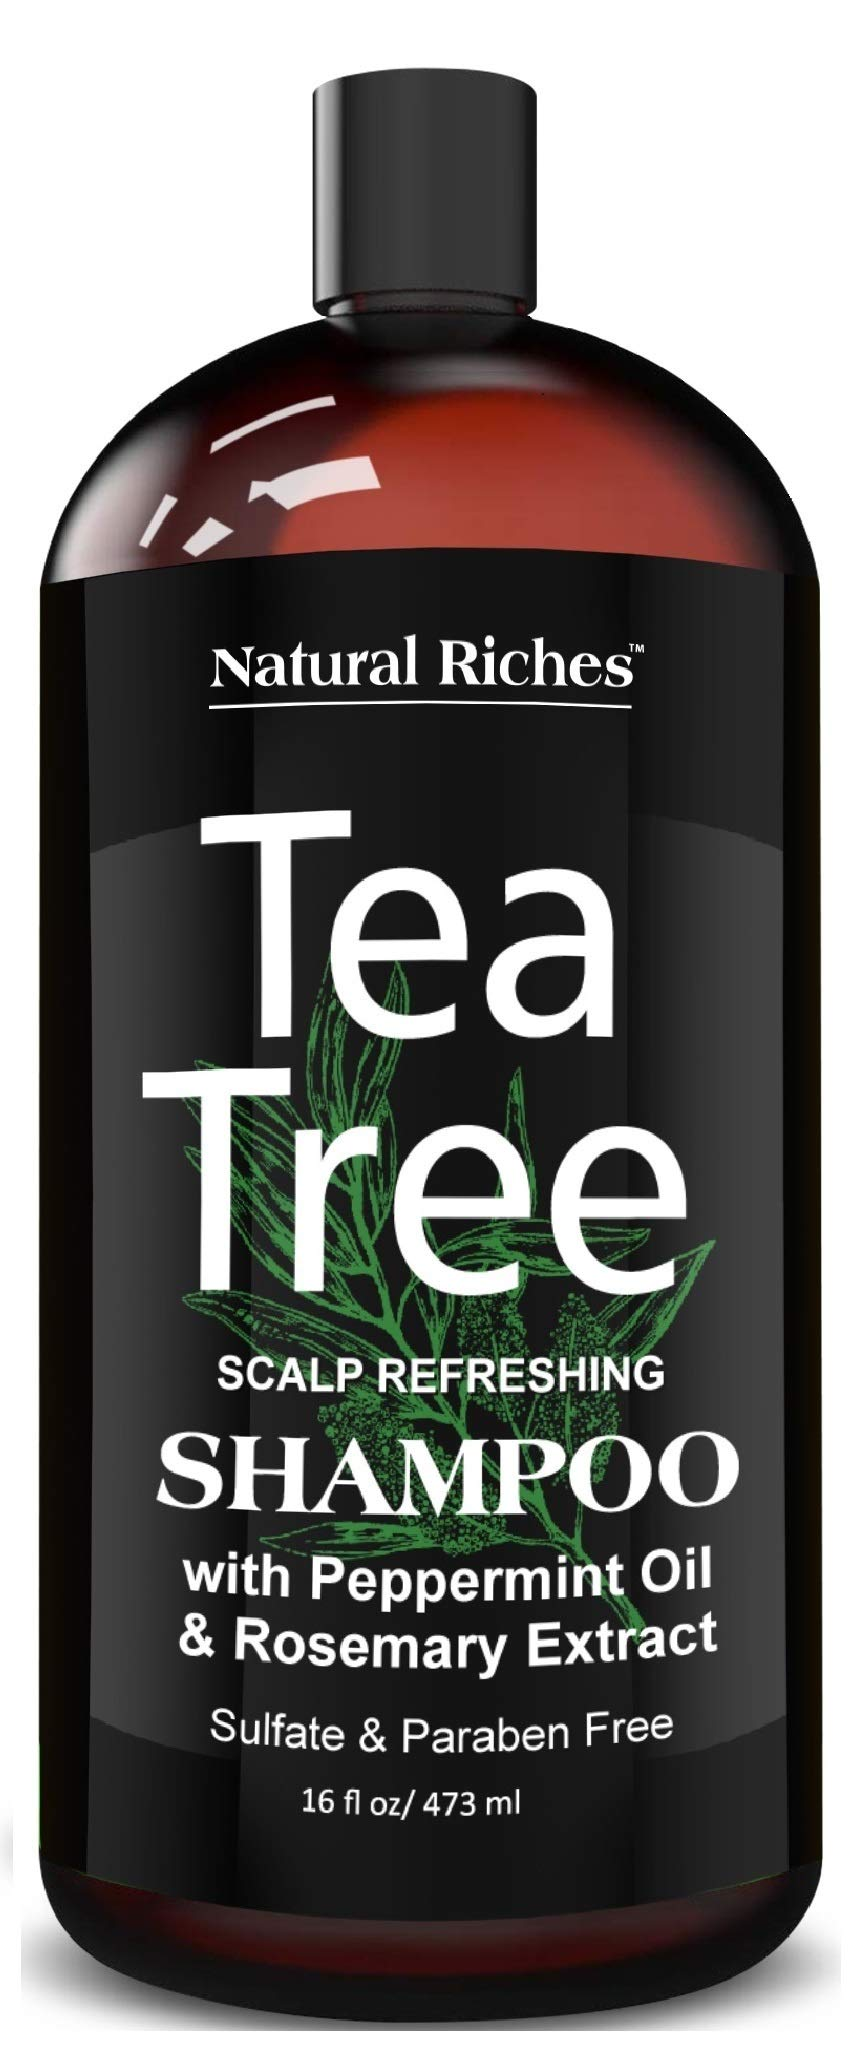 Natural Riches Tea Tree Shampoo 16 fl oz - Special Tea Tree Oil Shampoo Fights Dandruff with Pure Tea Tree Oil for Dry Hair, Itchy Scalp, lice, with Pure Lavender, Peppermint, Sulfate & Paraben Free by Natural Riches